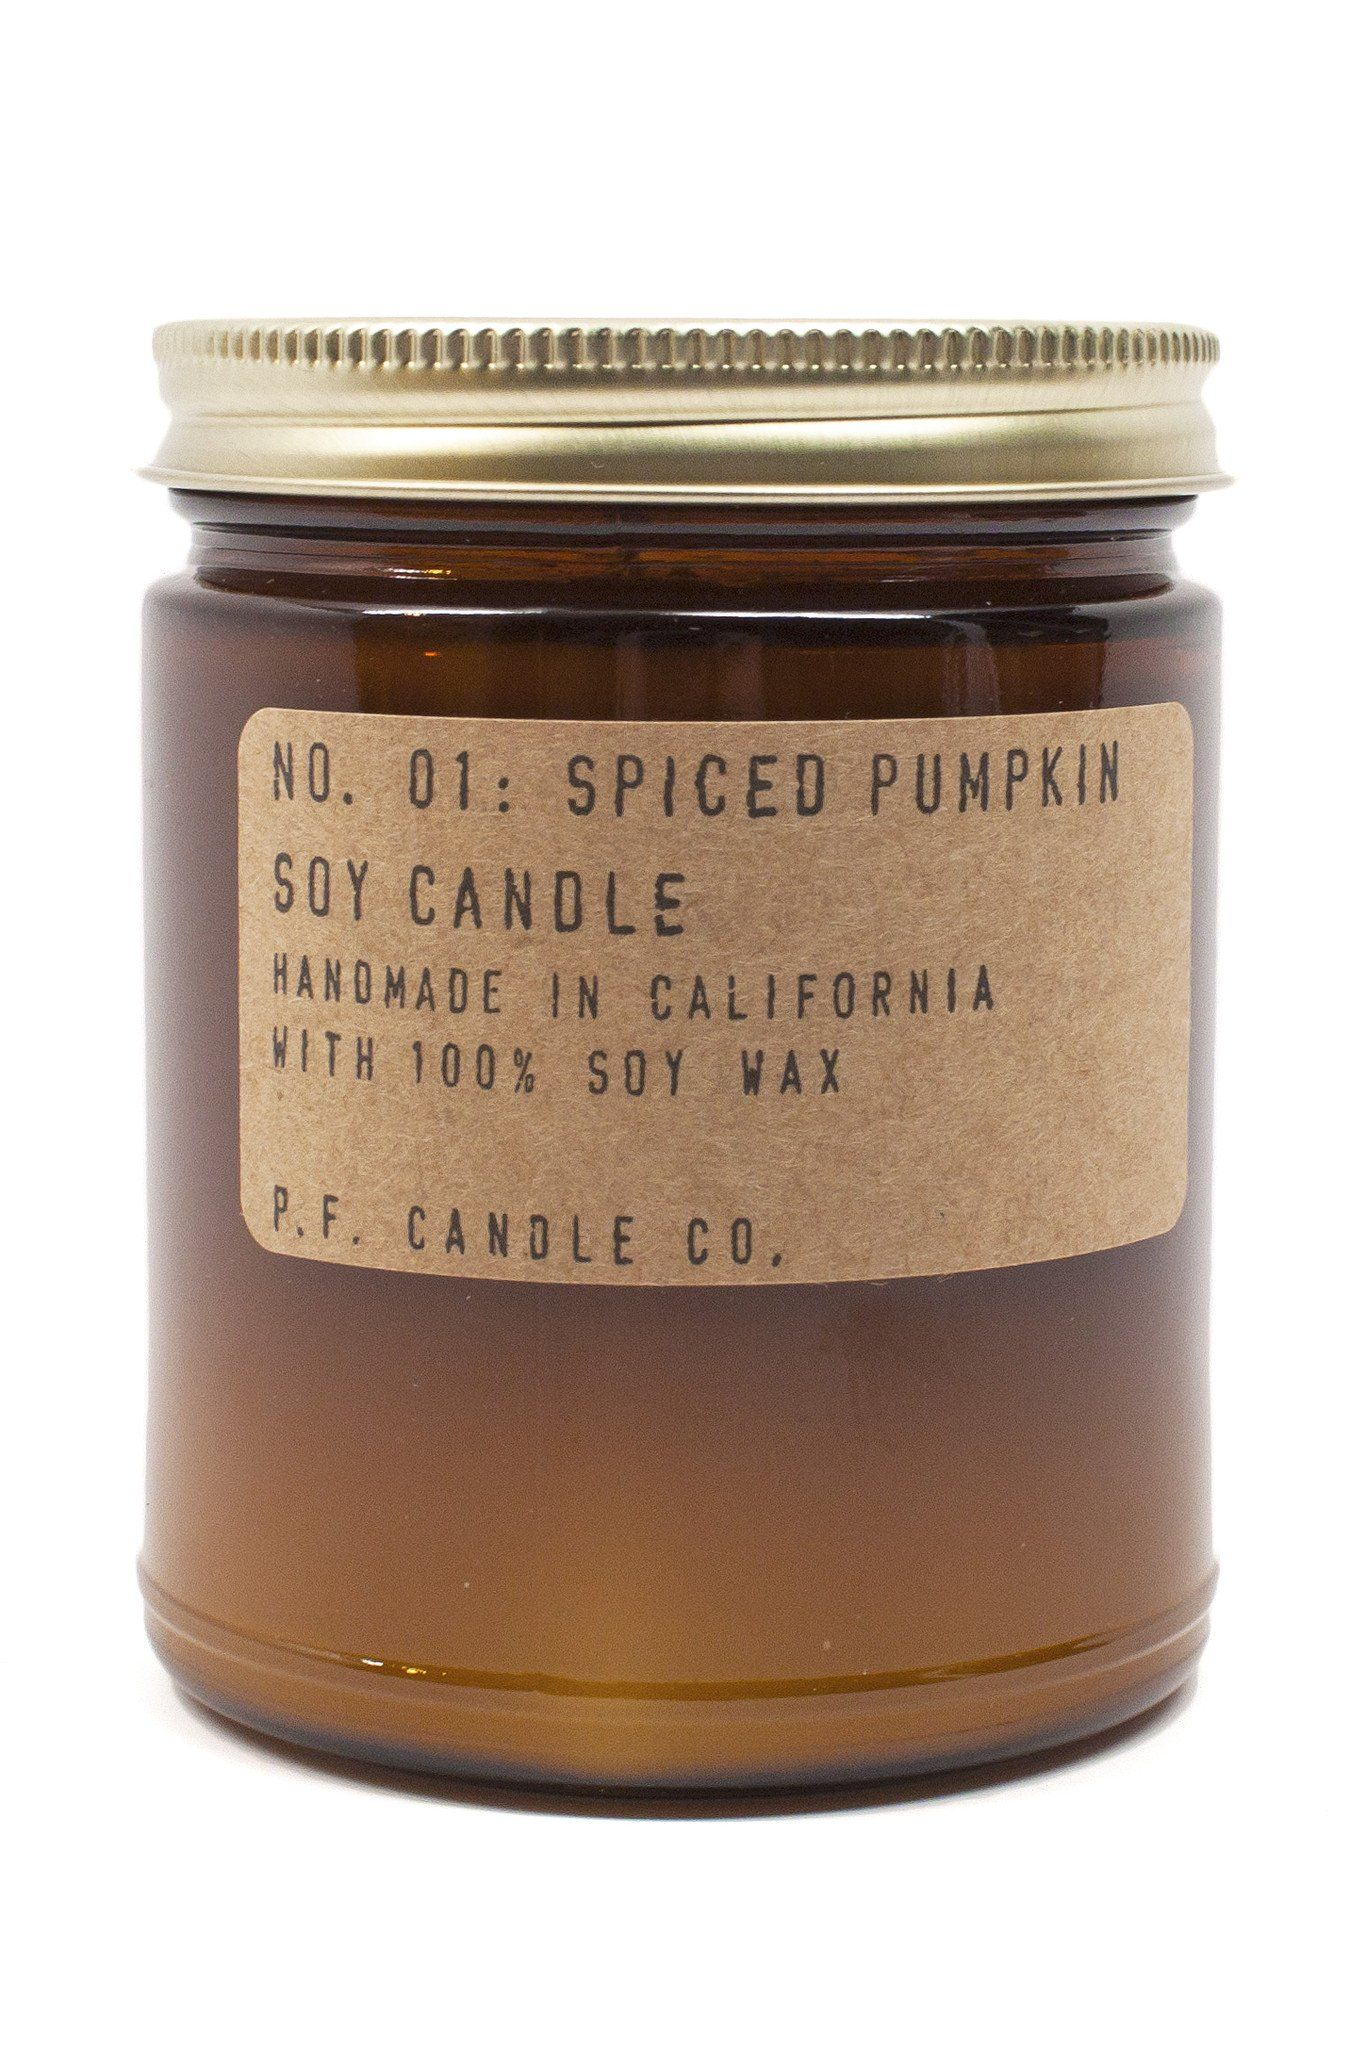 Spiced Pumpkin Candle Products Pumpkin candles